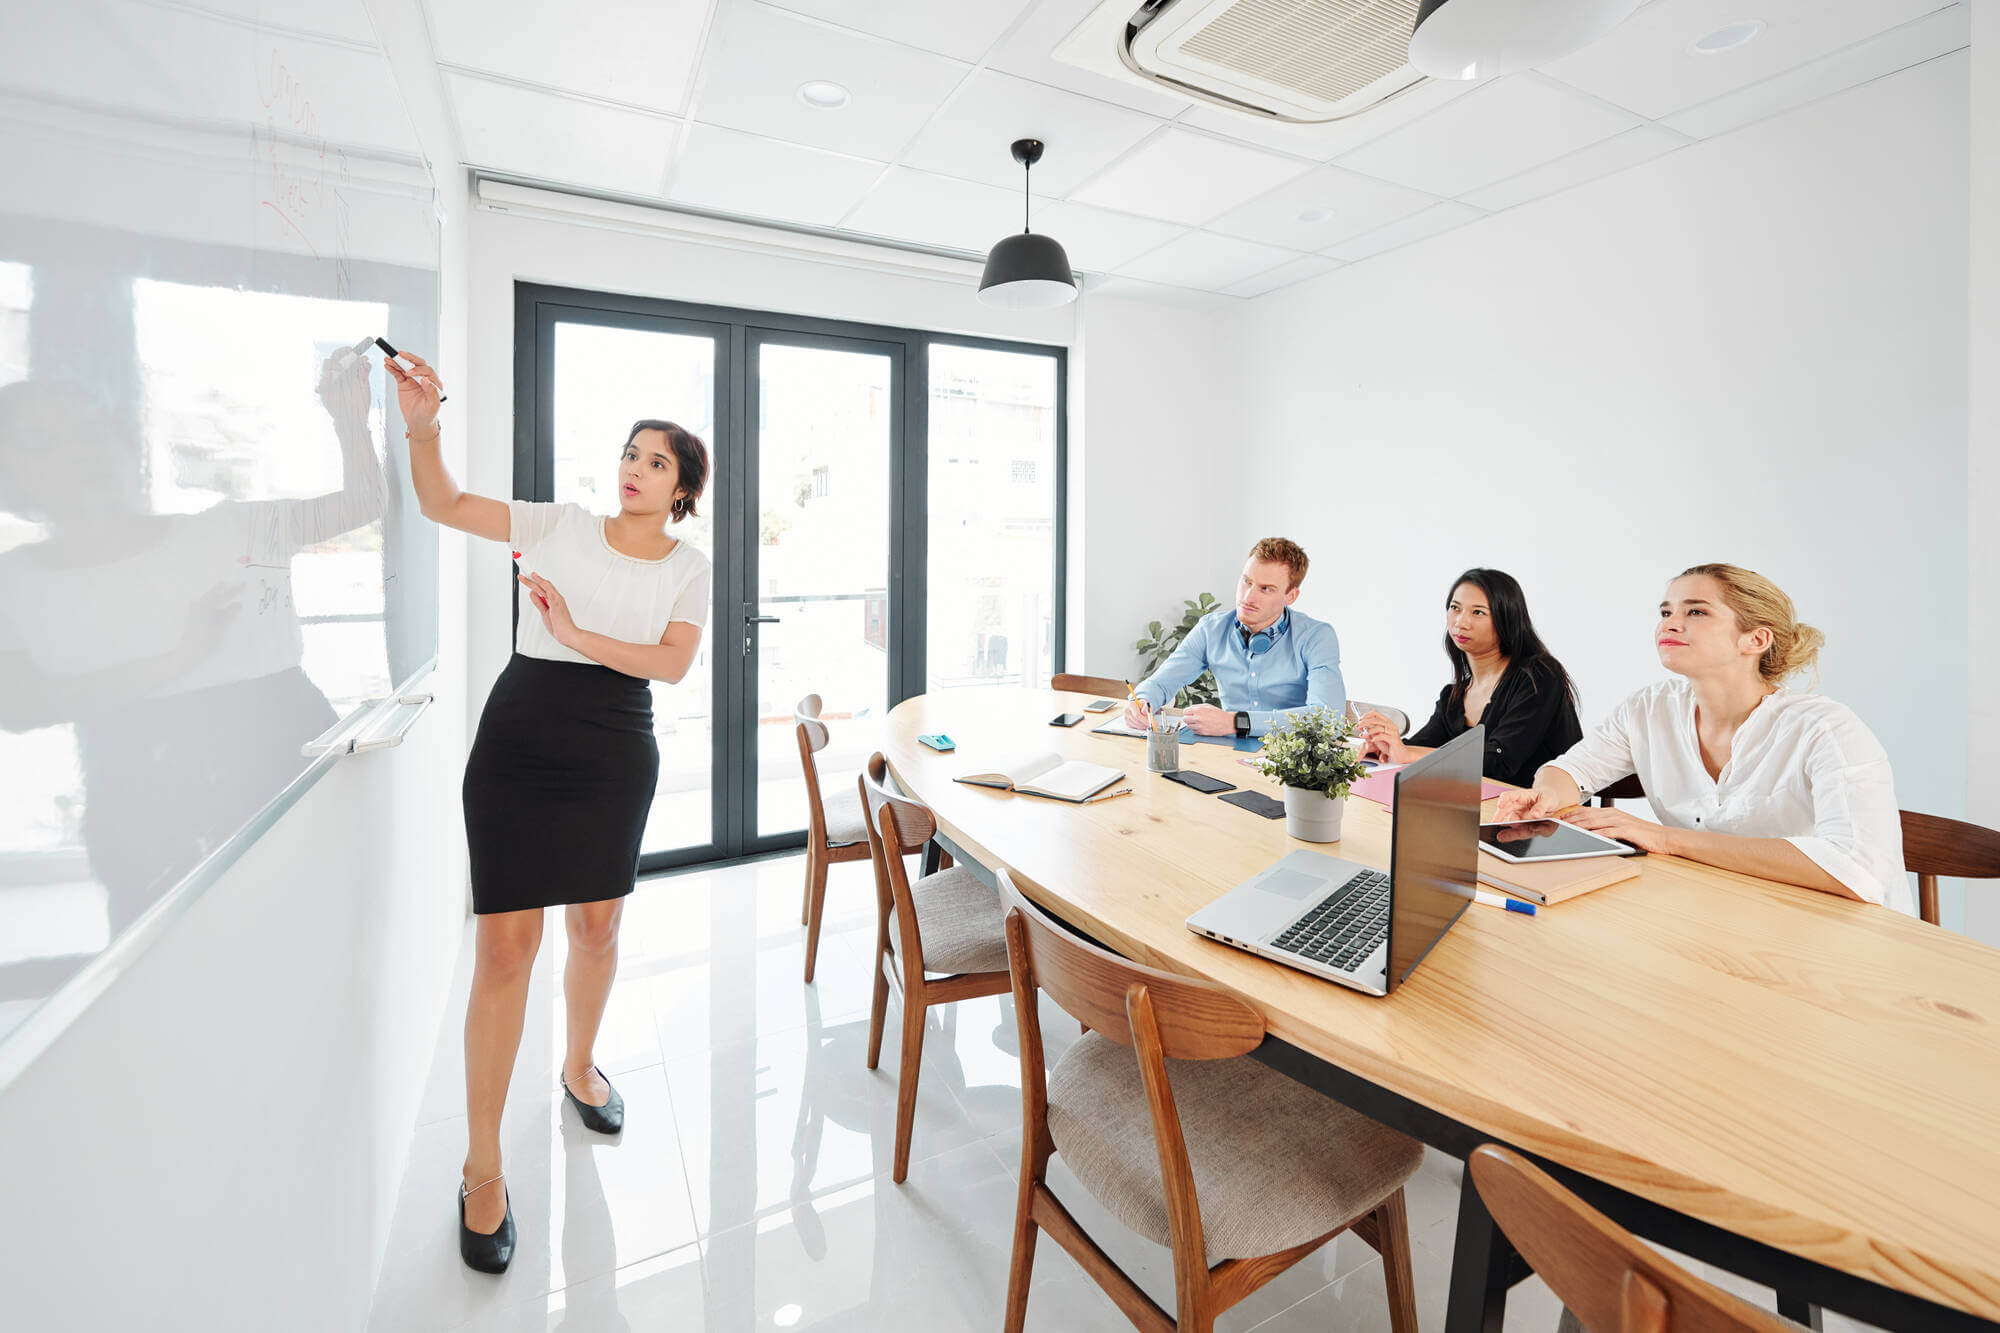 leadership strategies to train team effectively